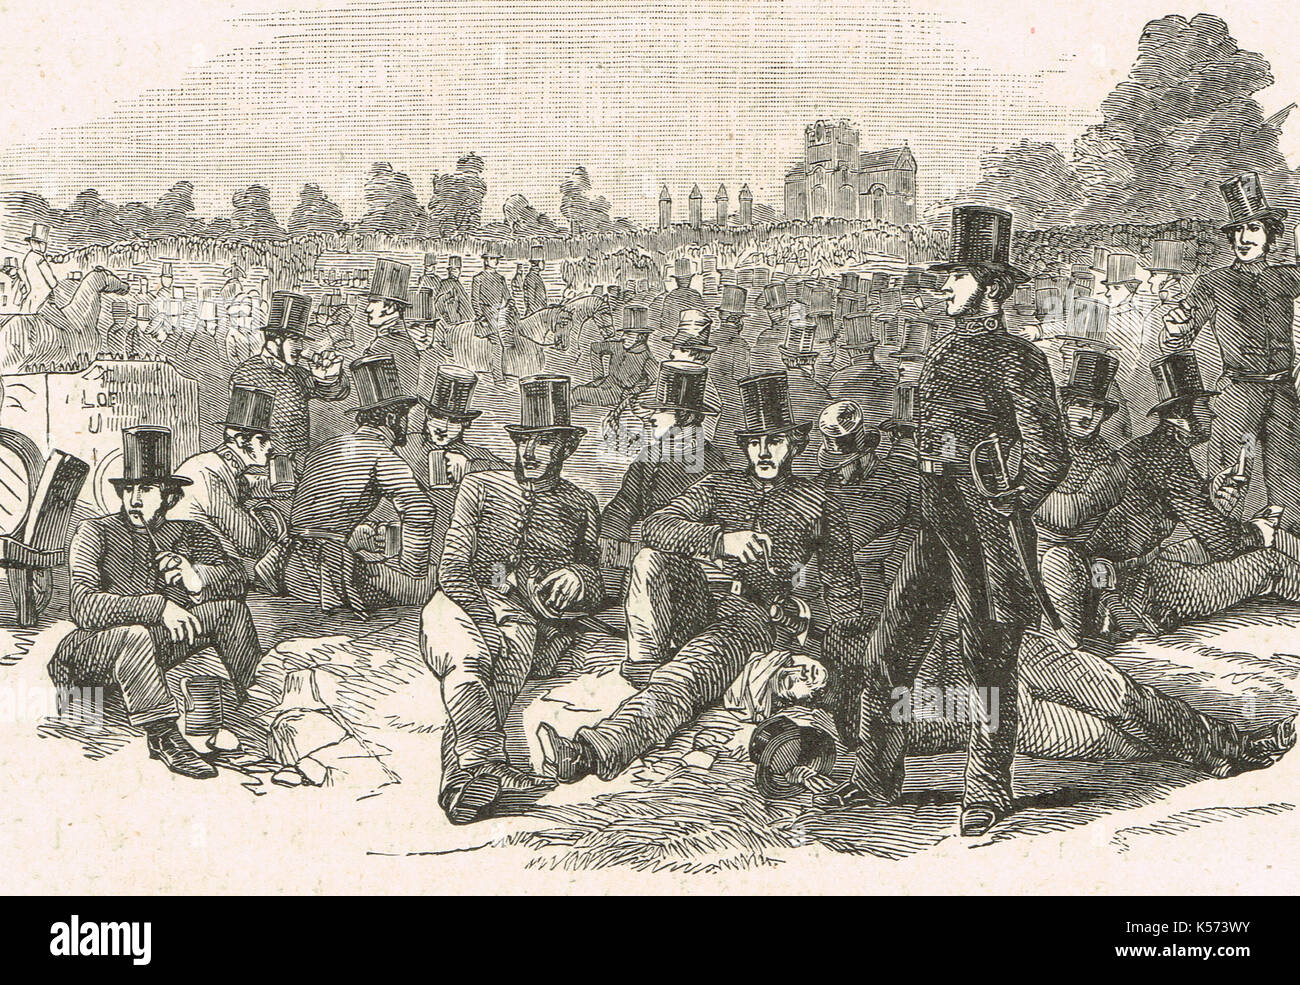 Chartist agitation, Police force, Bonner's Fields, 1848 - Stock Image